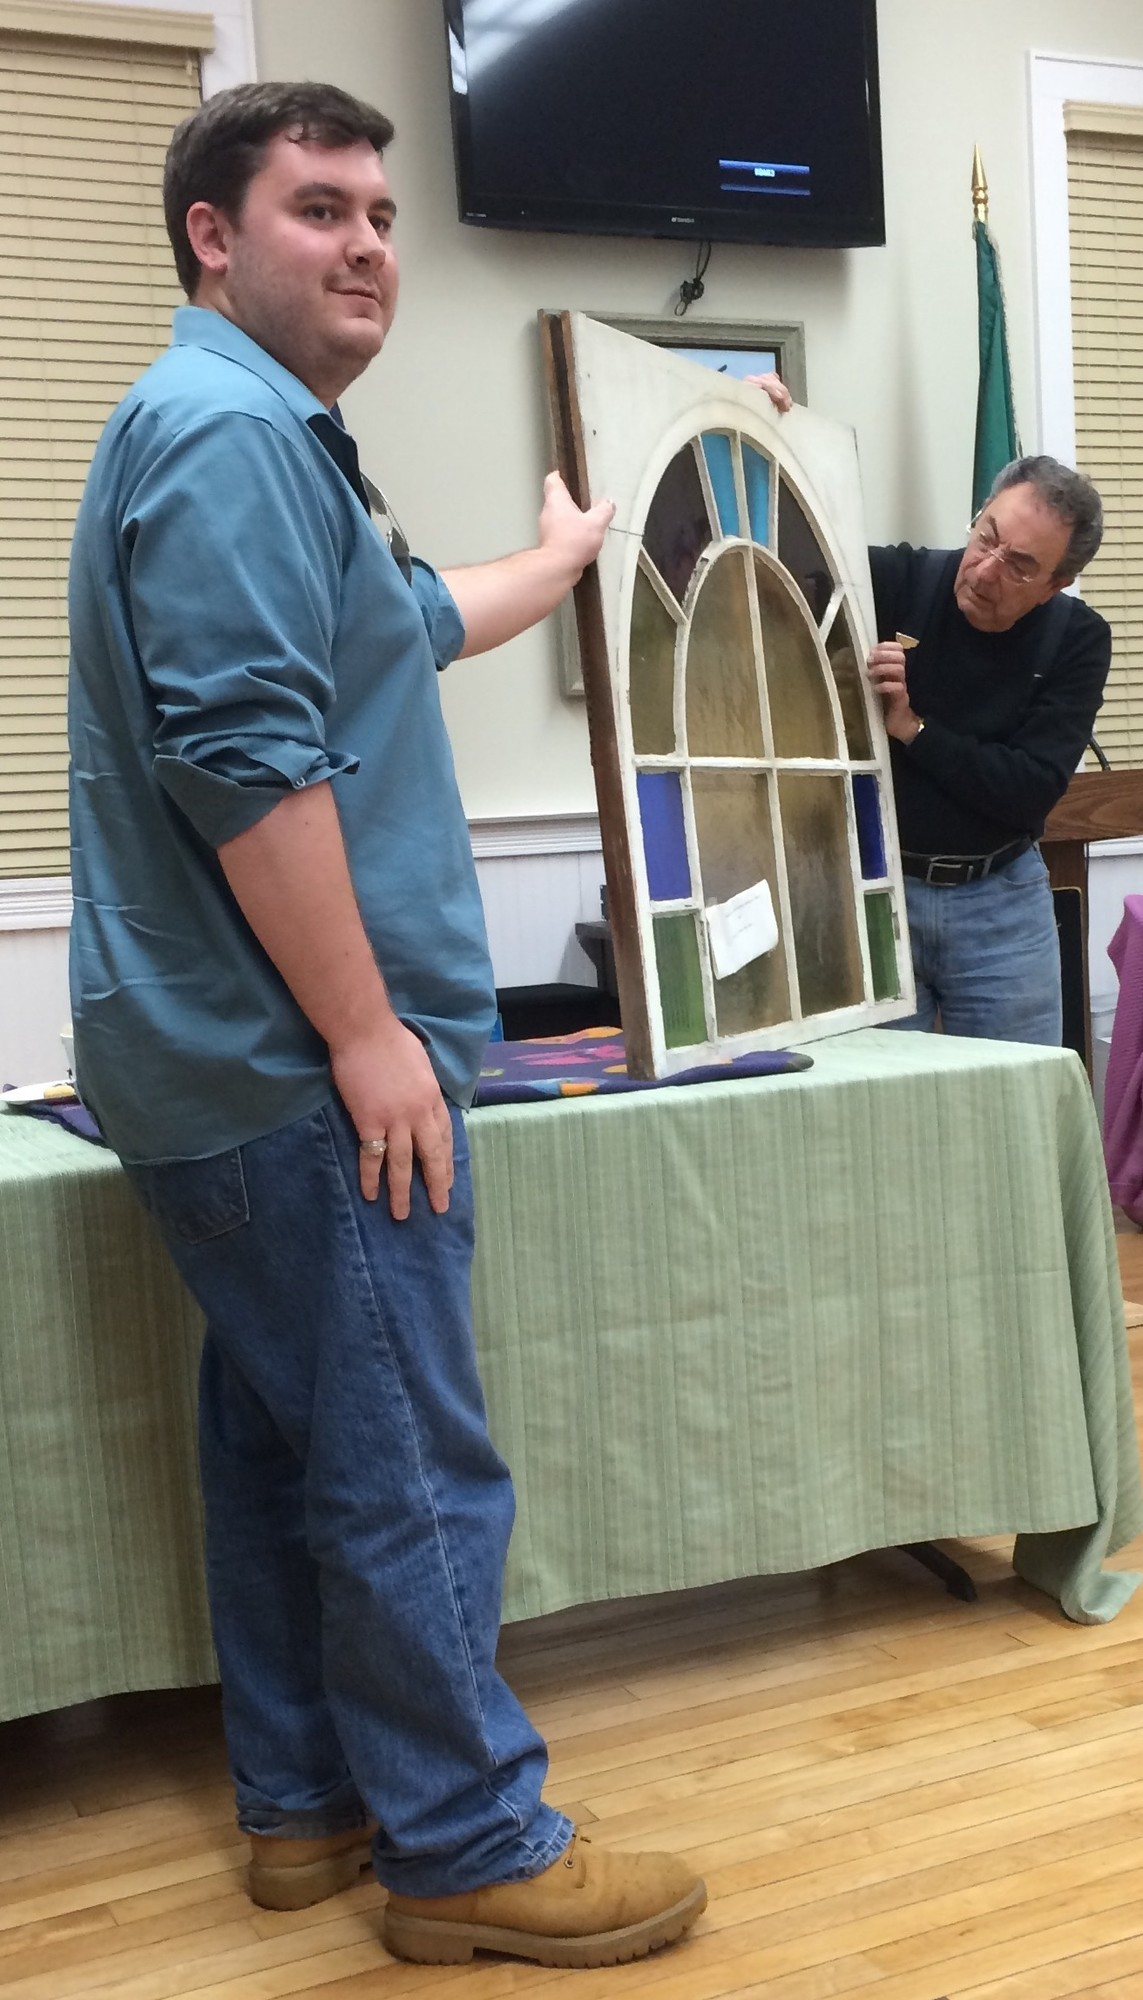 Historical Society board member Patrick Martz, left, showed Costello a stained glass window that was from the original Methodist Church building on Merrick Road.